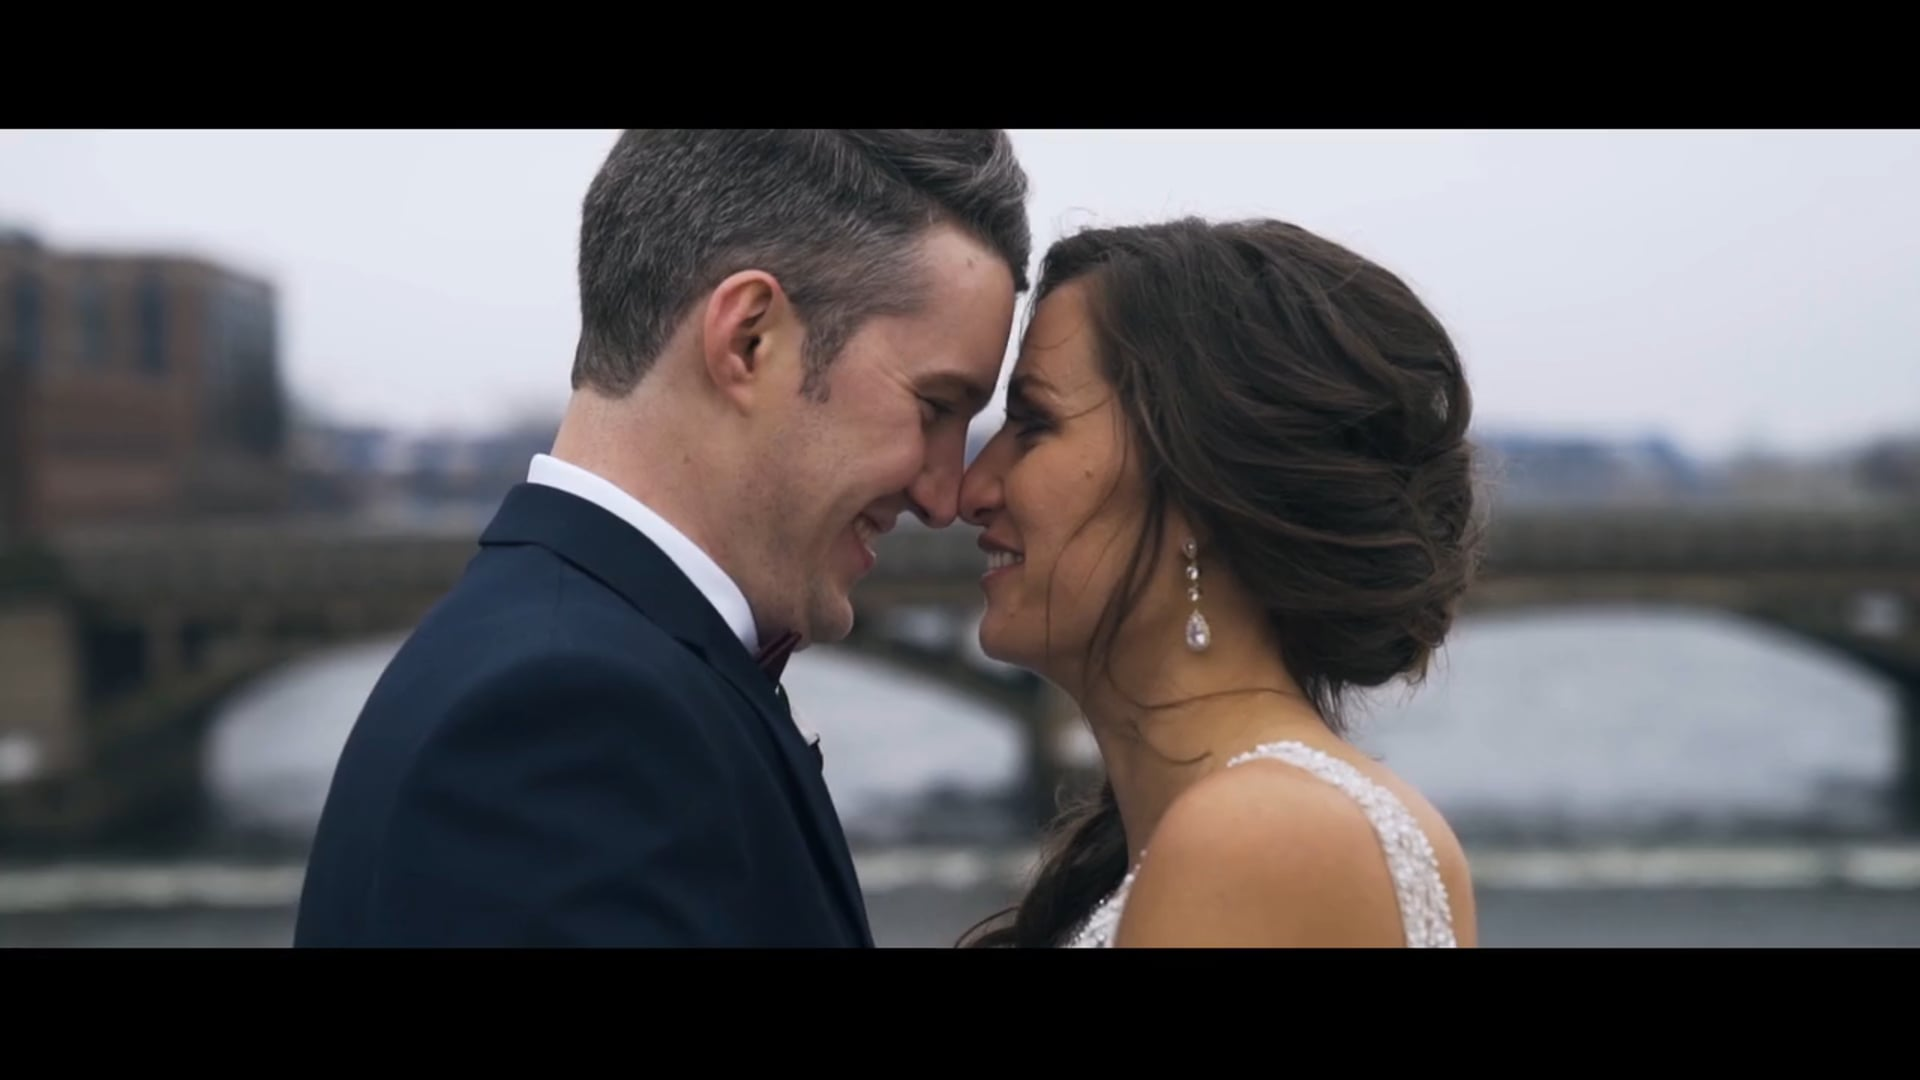 Mike & Camille Wedding Highlight